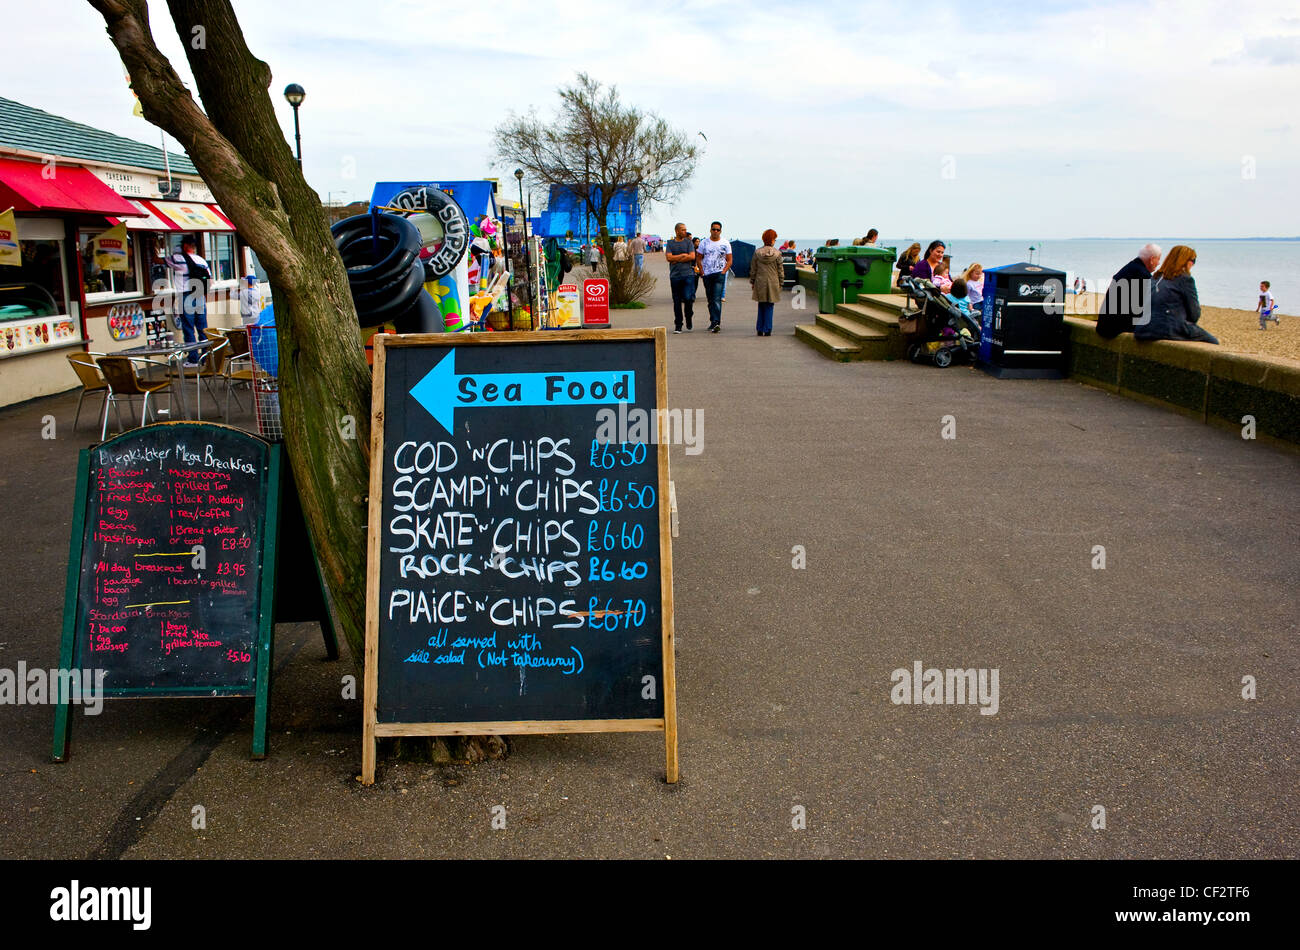 Signs advertising fast food on the seafront at Southend-on-Sea. - Stock Image